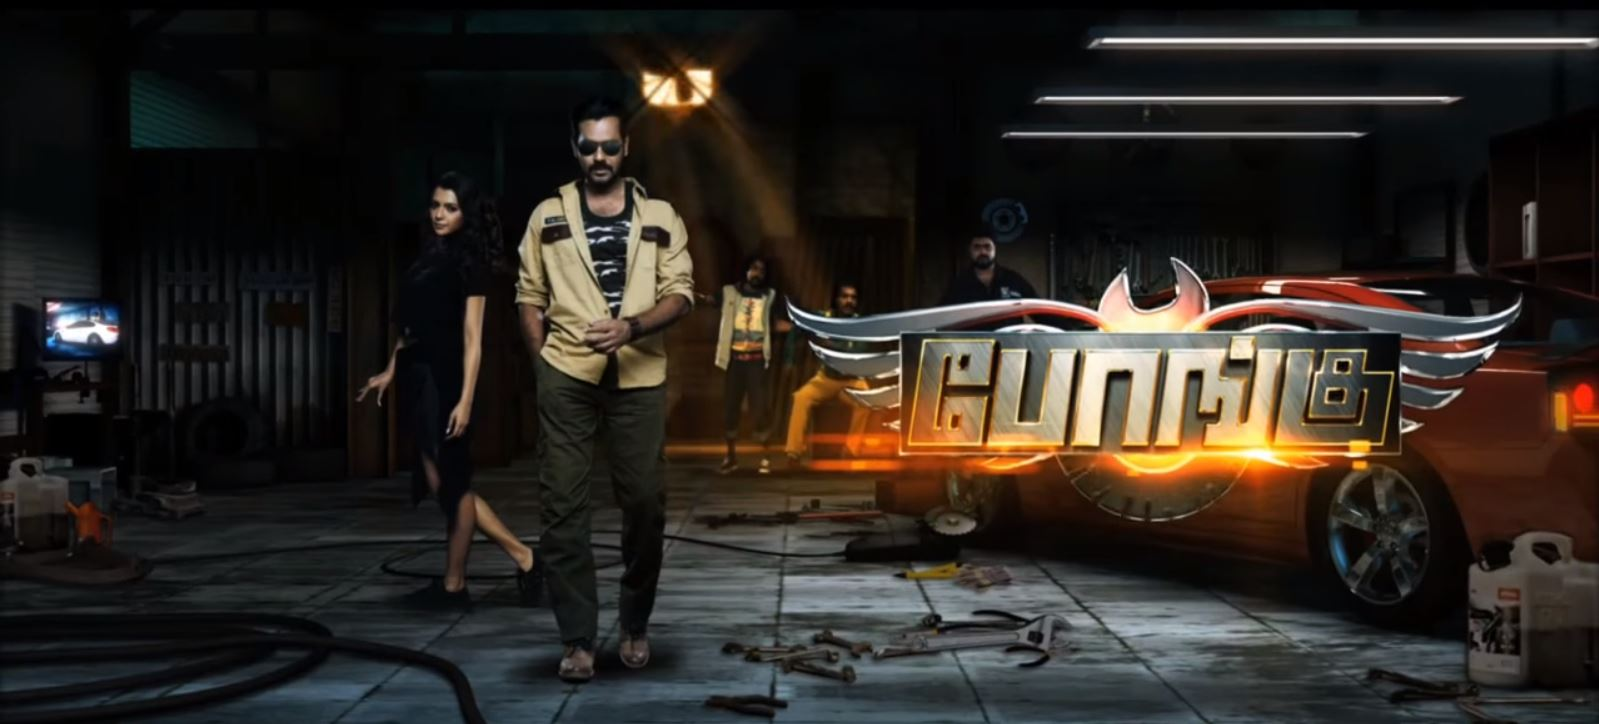 Bongu Movie Motion Poster